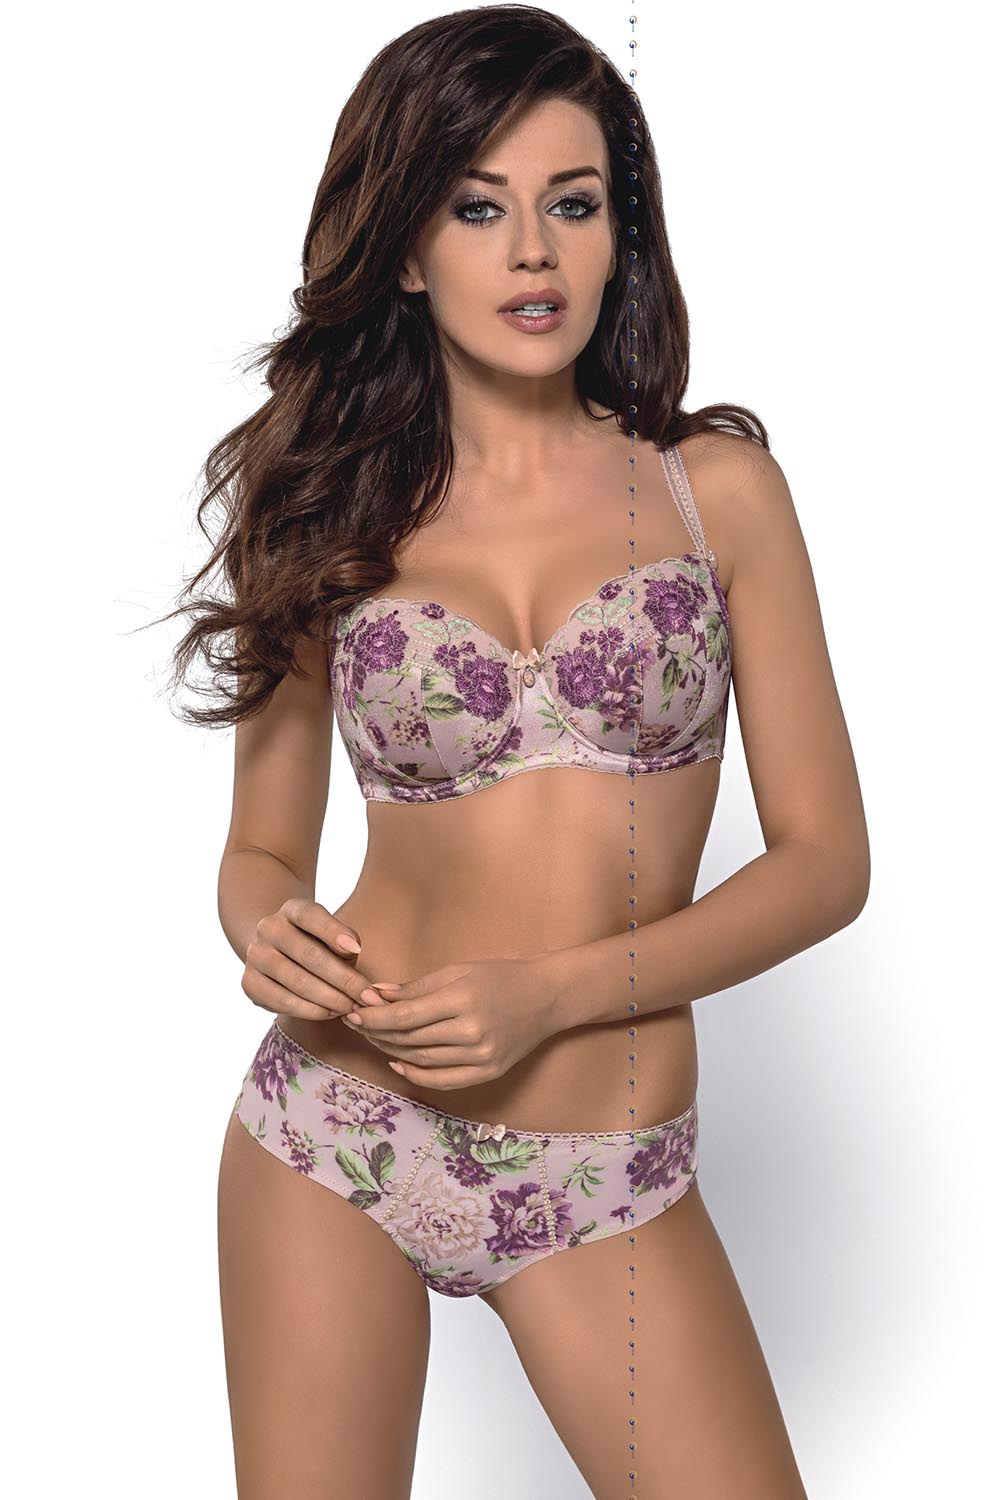 6d657c28e7 ... Gorsenia K280 Margo underwired padded floral balconette bra adjustable  straps ...